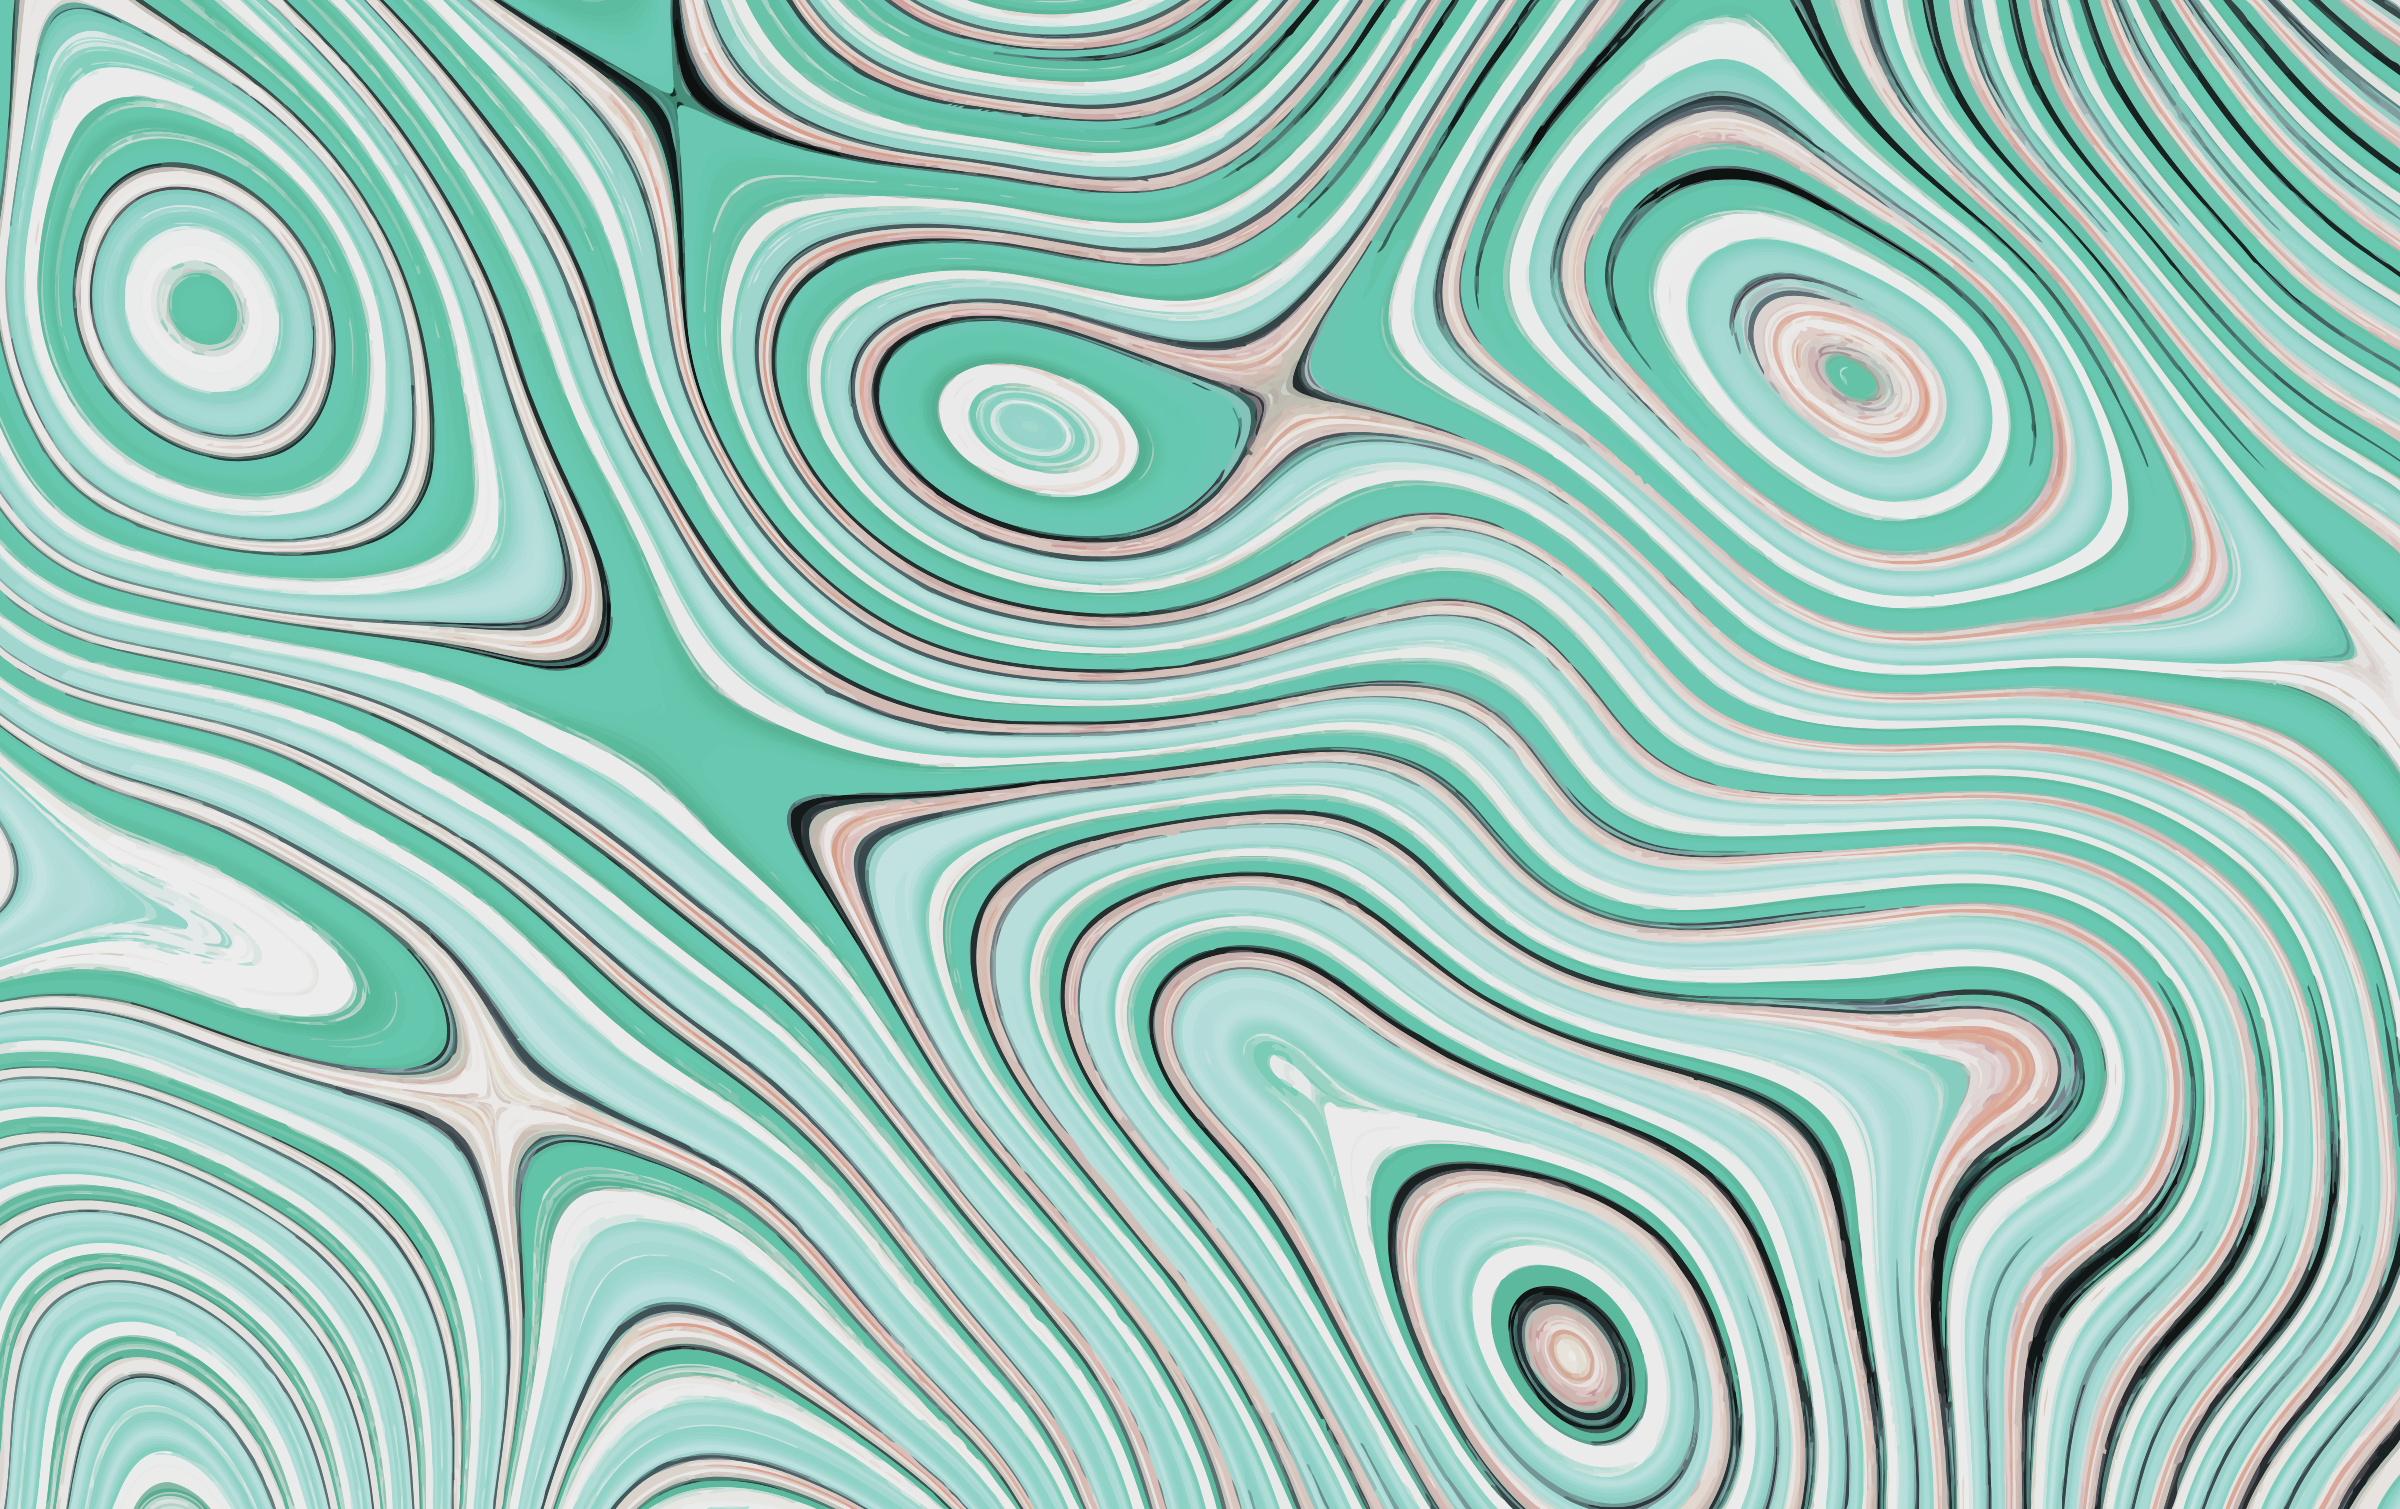 Background pattern 115 (colour 4) by Firkin